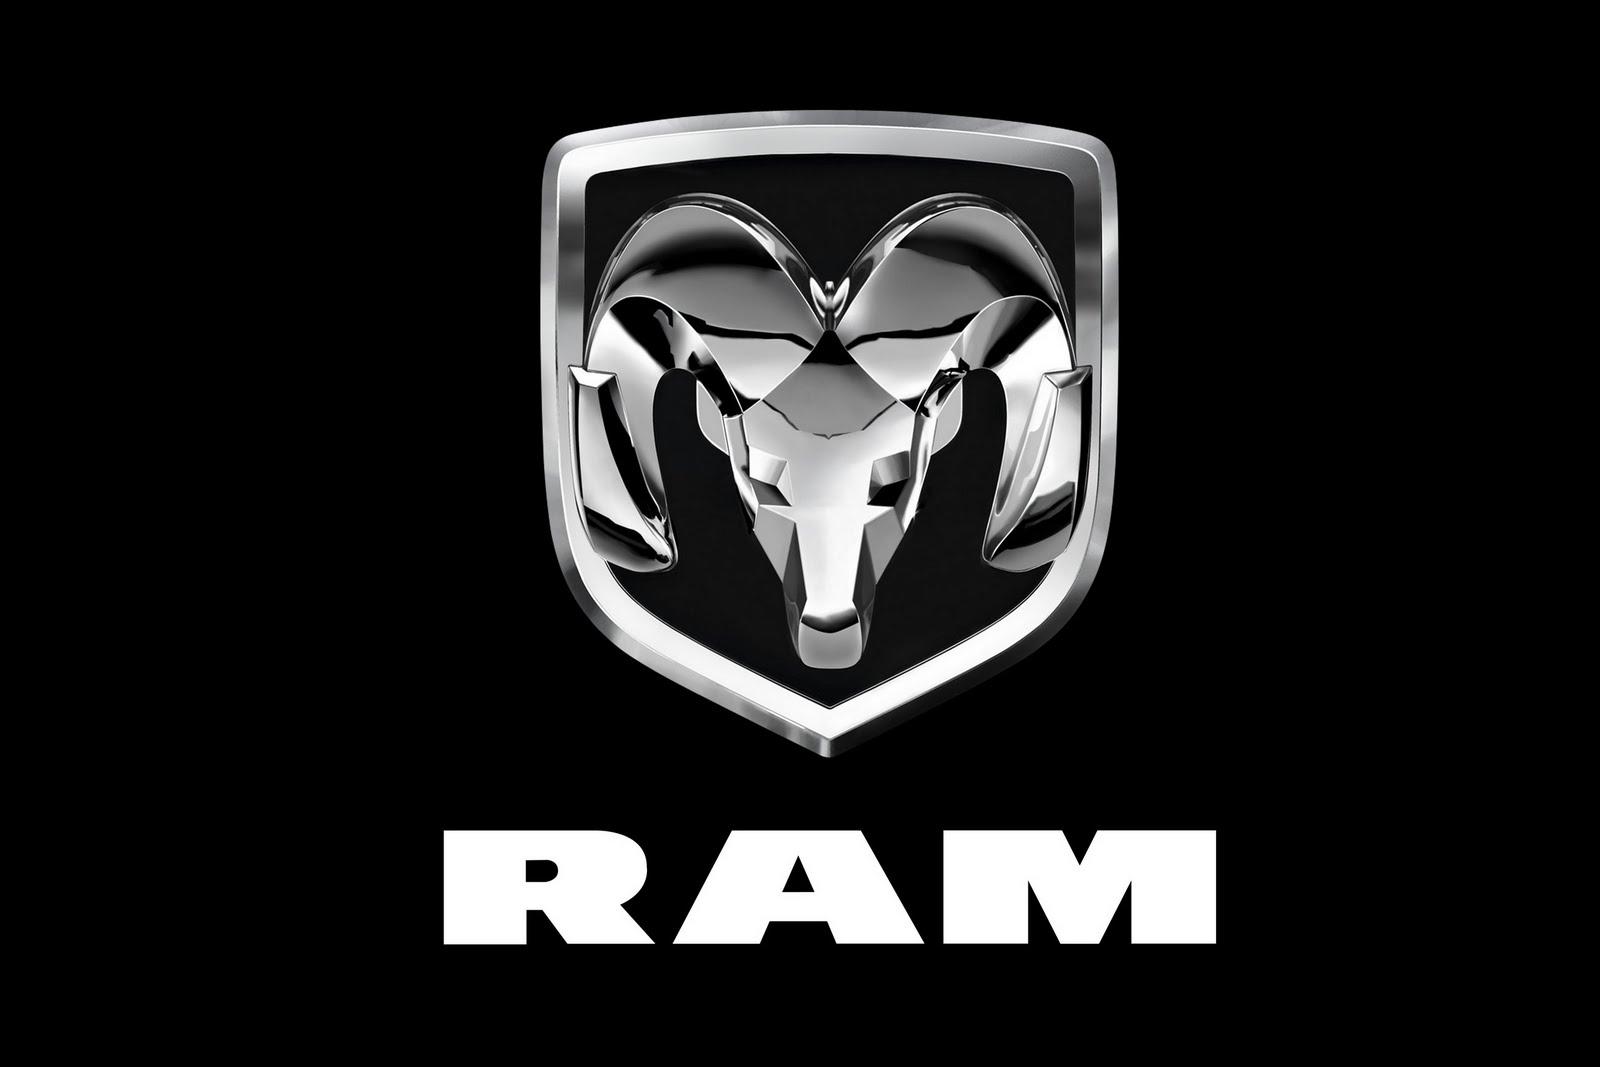 dodge ram logo wallpaper 33877 1600x1067 px ~ hdwallsource